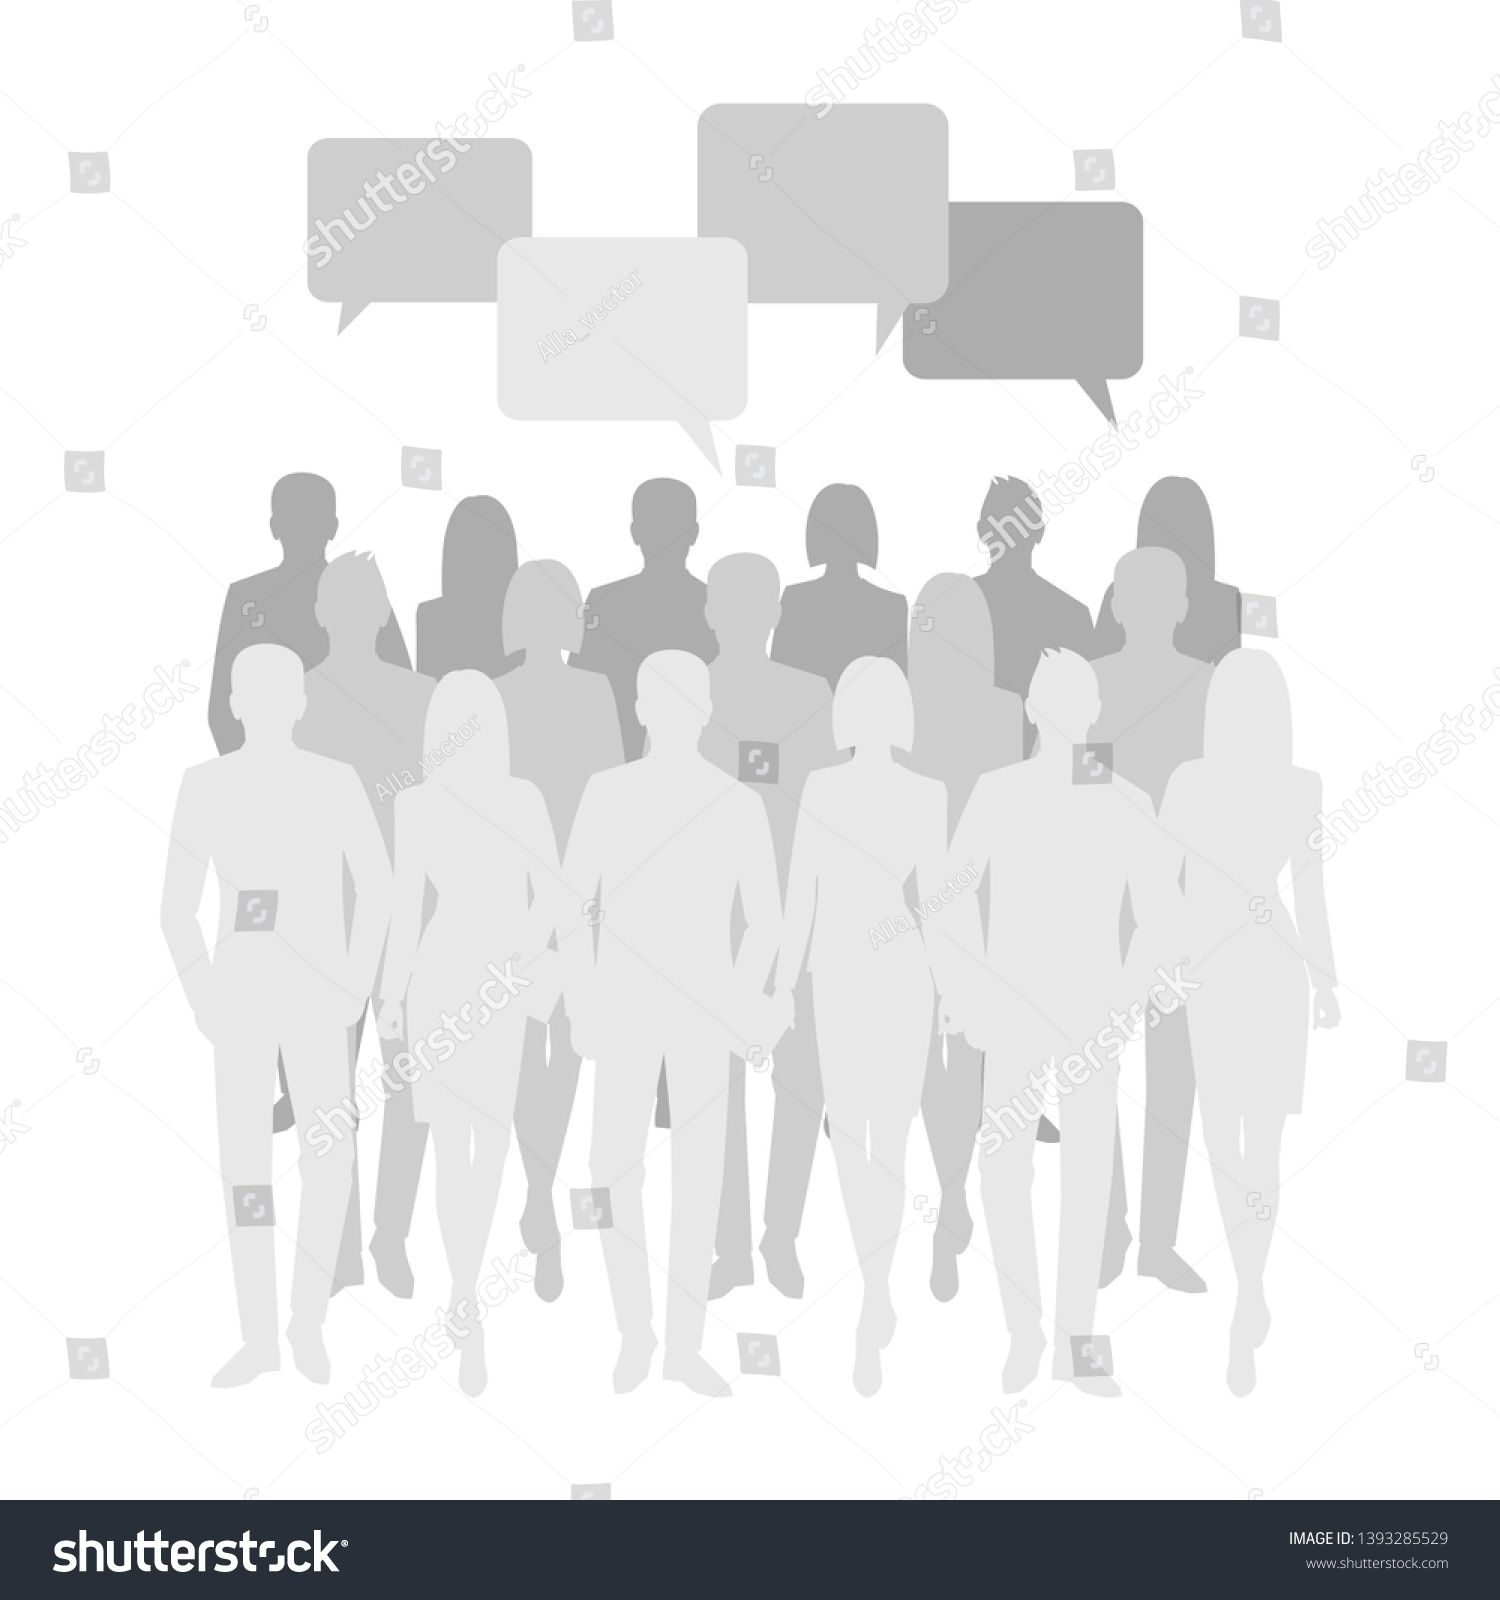 Business Men And Women Silhouette Team Business People Group Hold